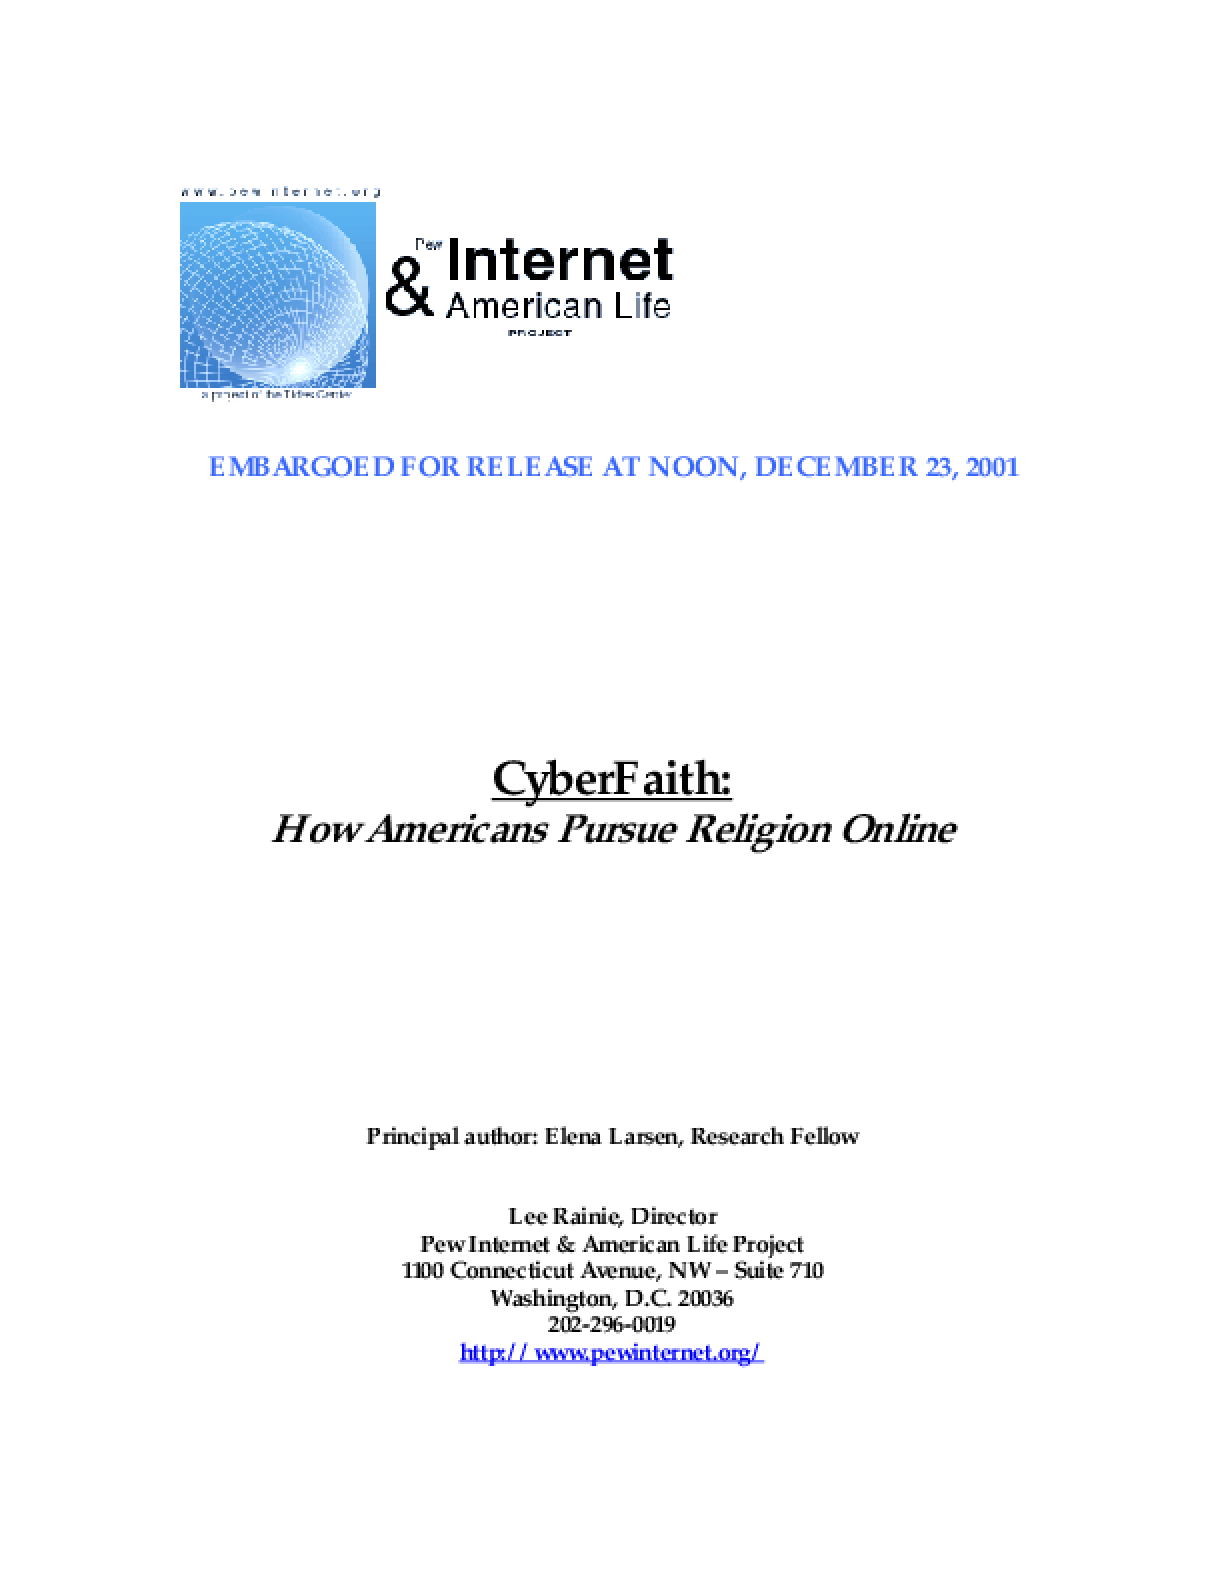 CyberFaith: How Americans Pursue Religion Online